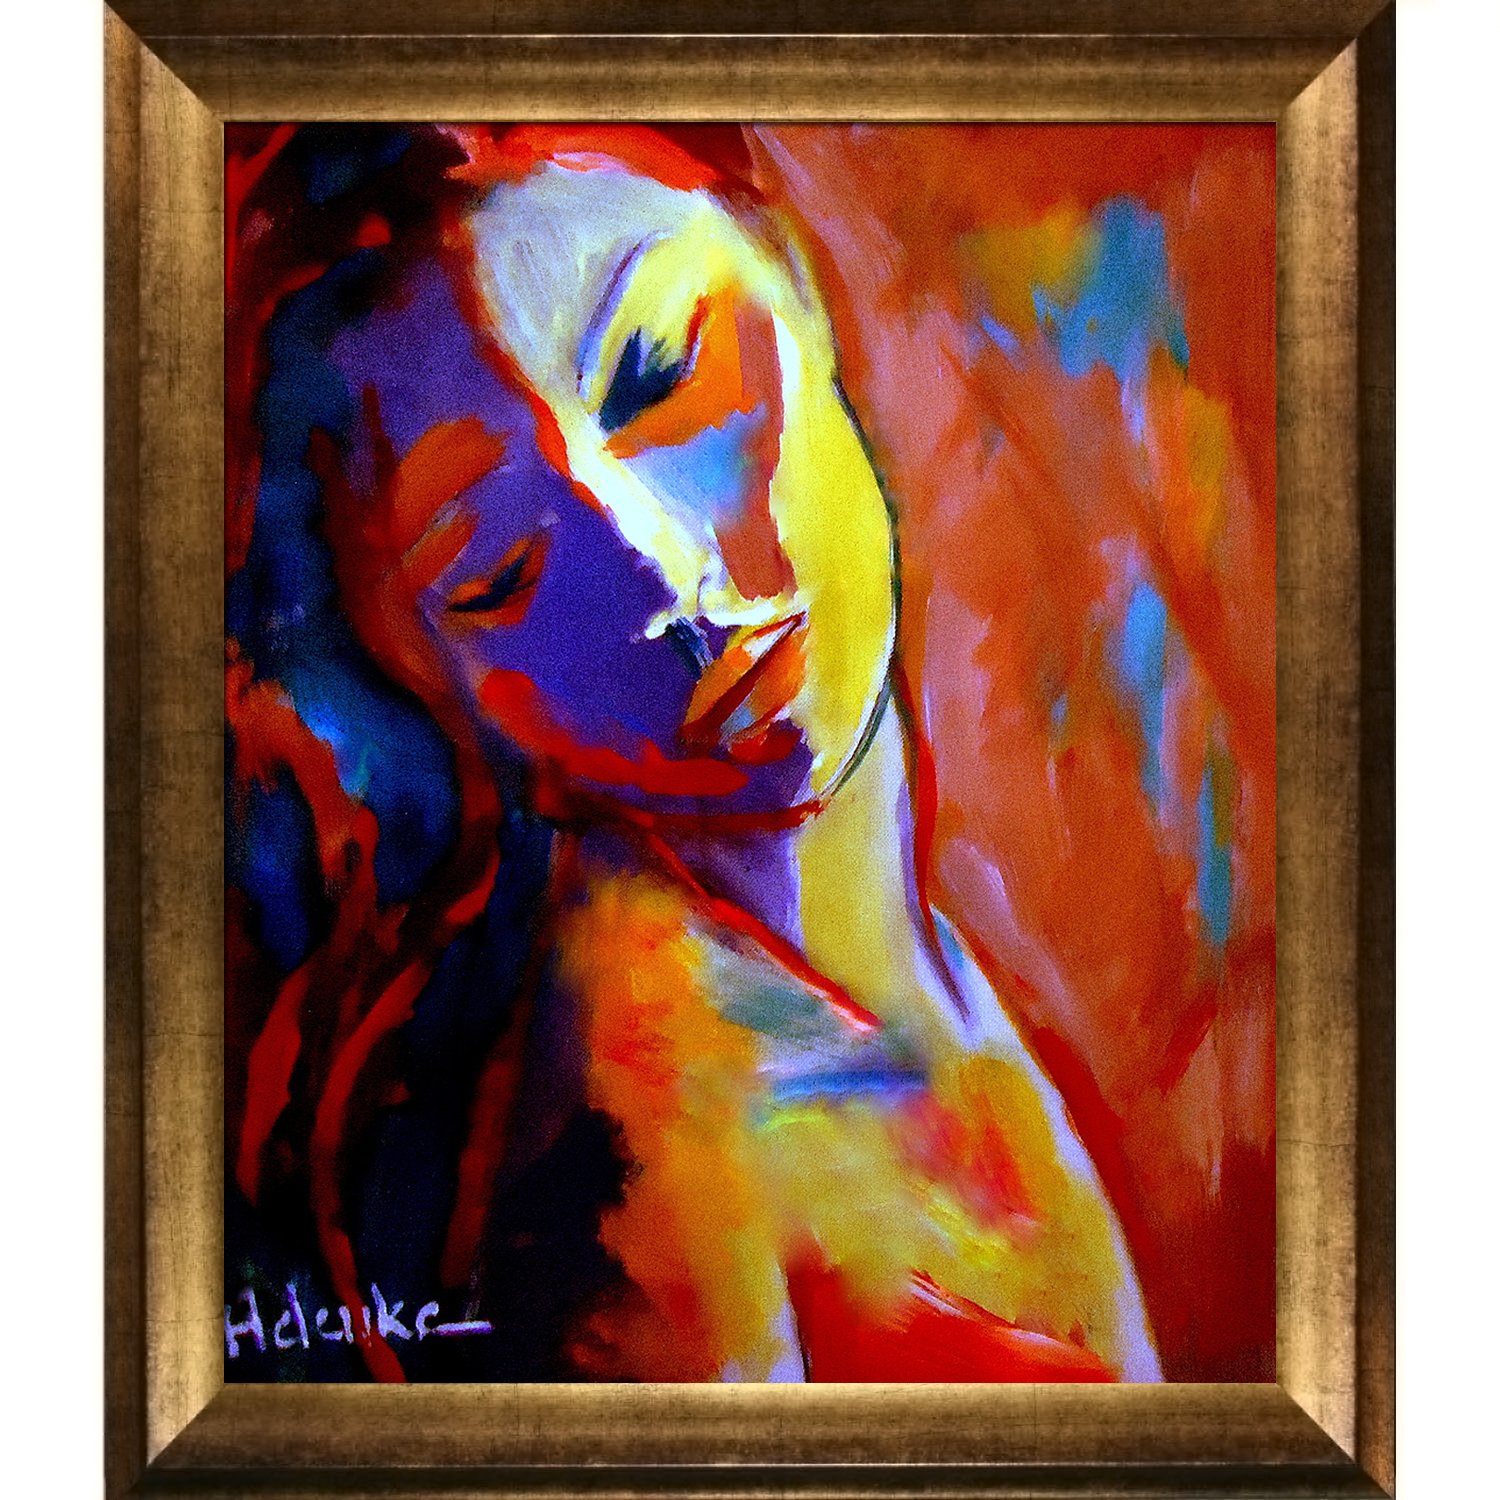 overstockArt Concealed Sorrows Framed Canvas Print of an Original Painting By Helena Wierzbicki